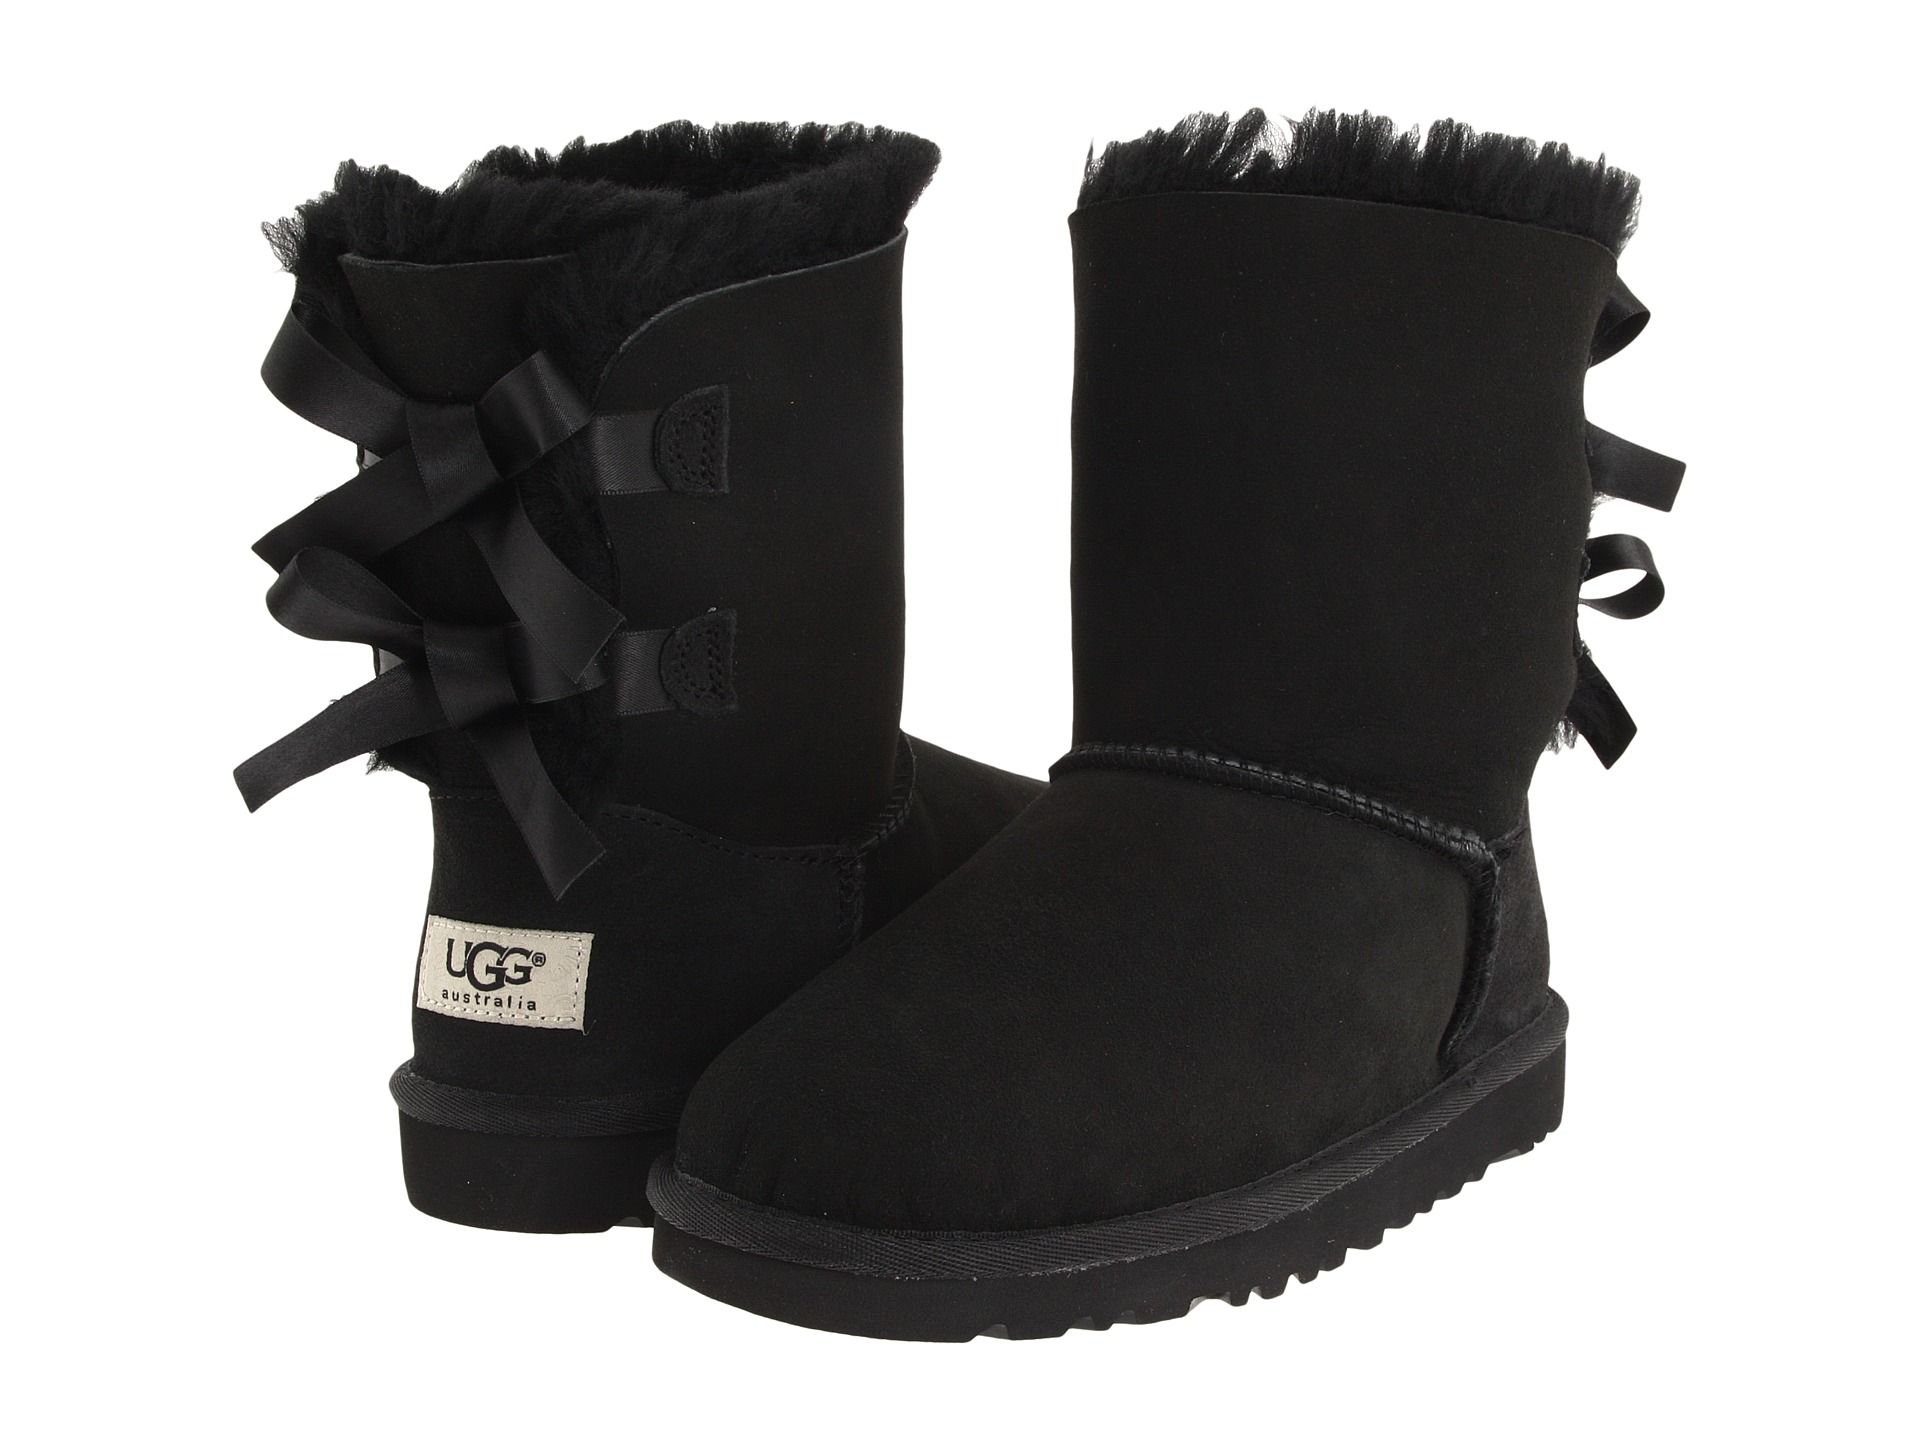 ugg bailey bow 3280 black boots